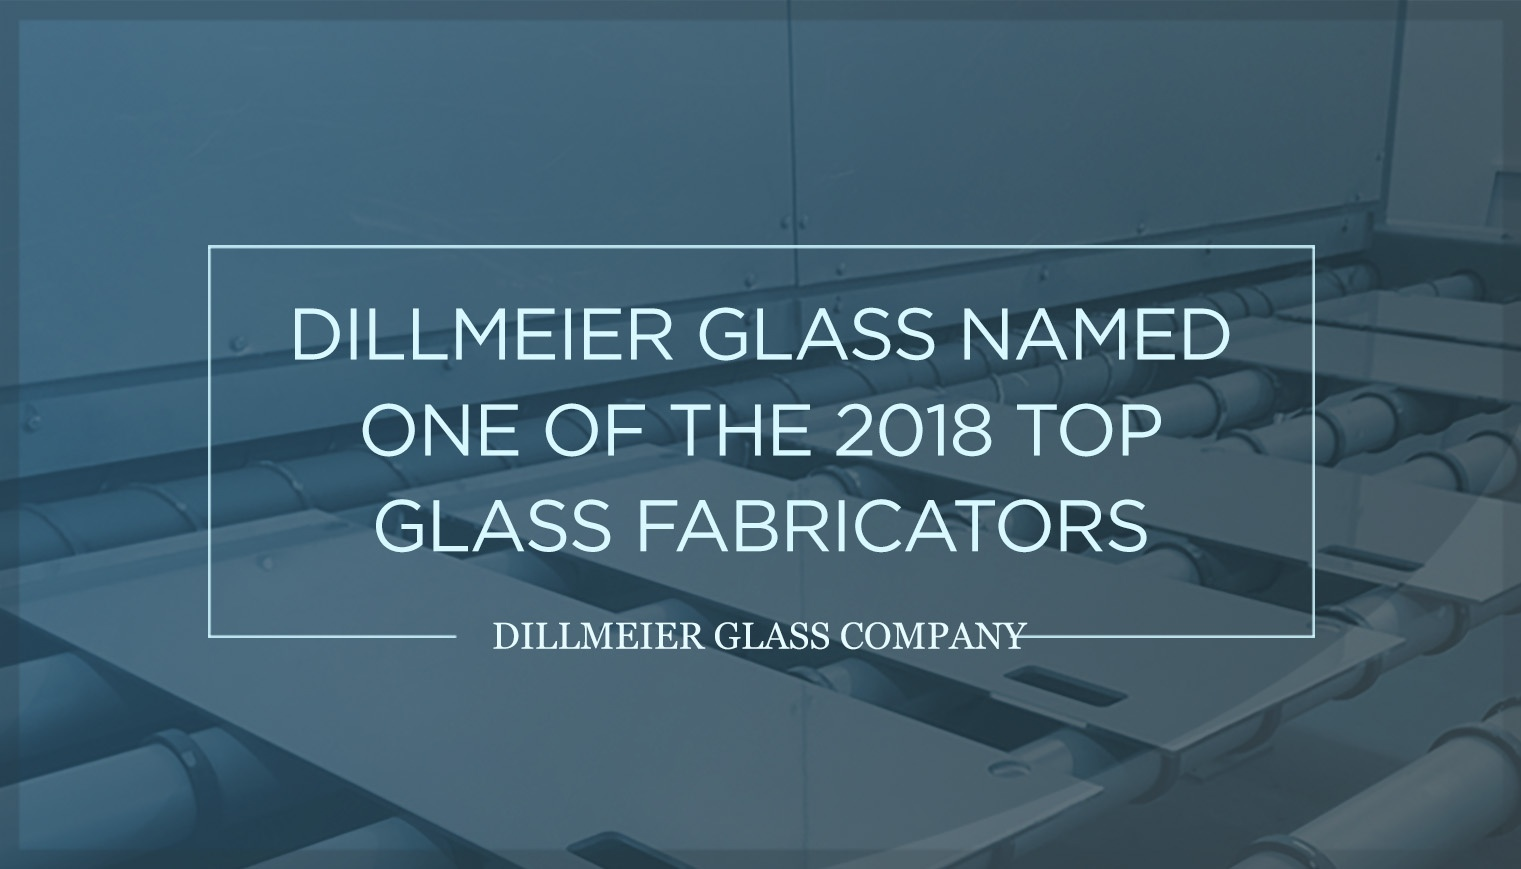 Dillmeier Glass Named One of the 2018 Top Glass Fabricators